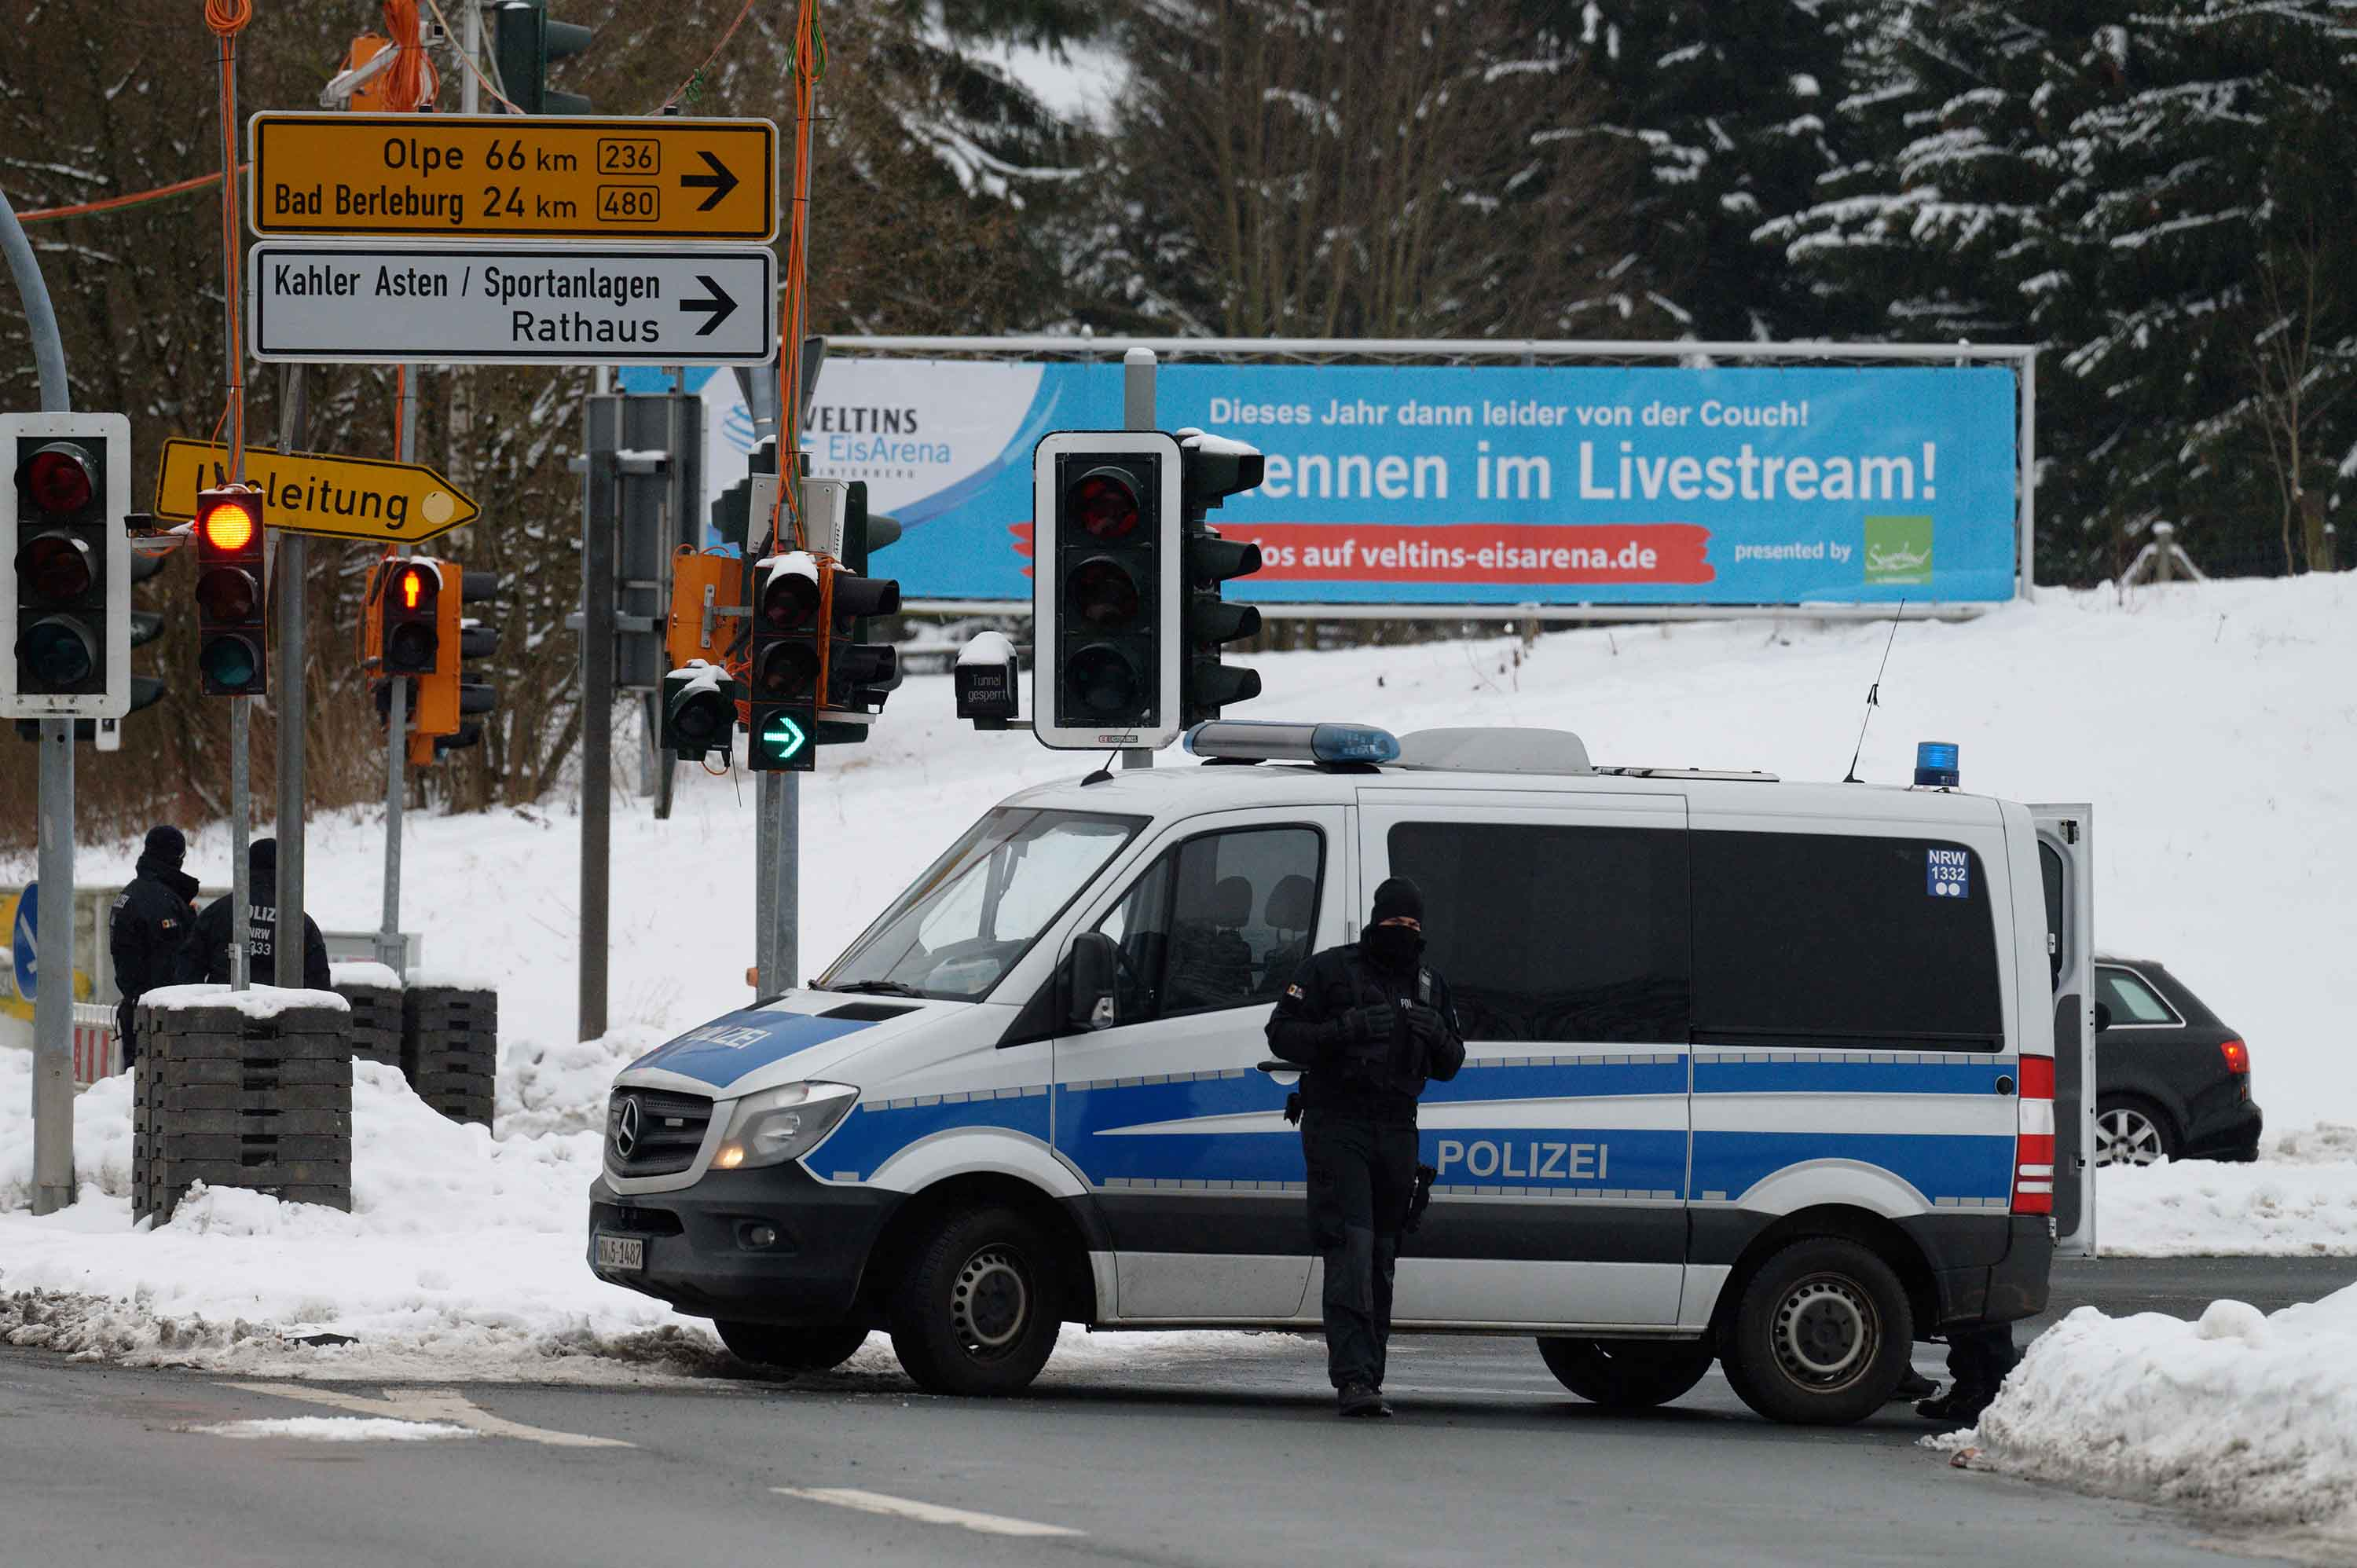 Police officers close the access road to the ski resort in Winterberg, Germany, on January 3.